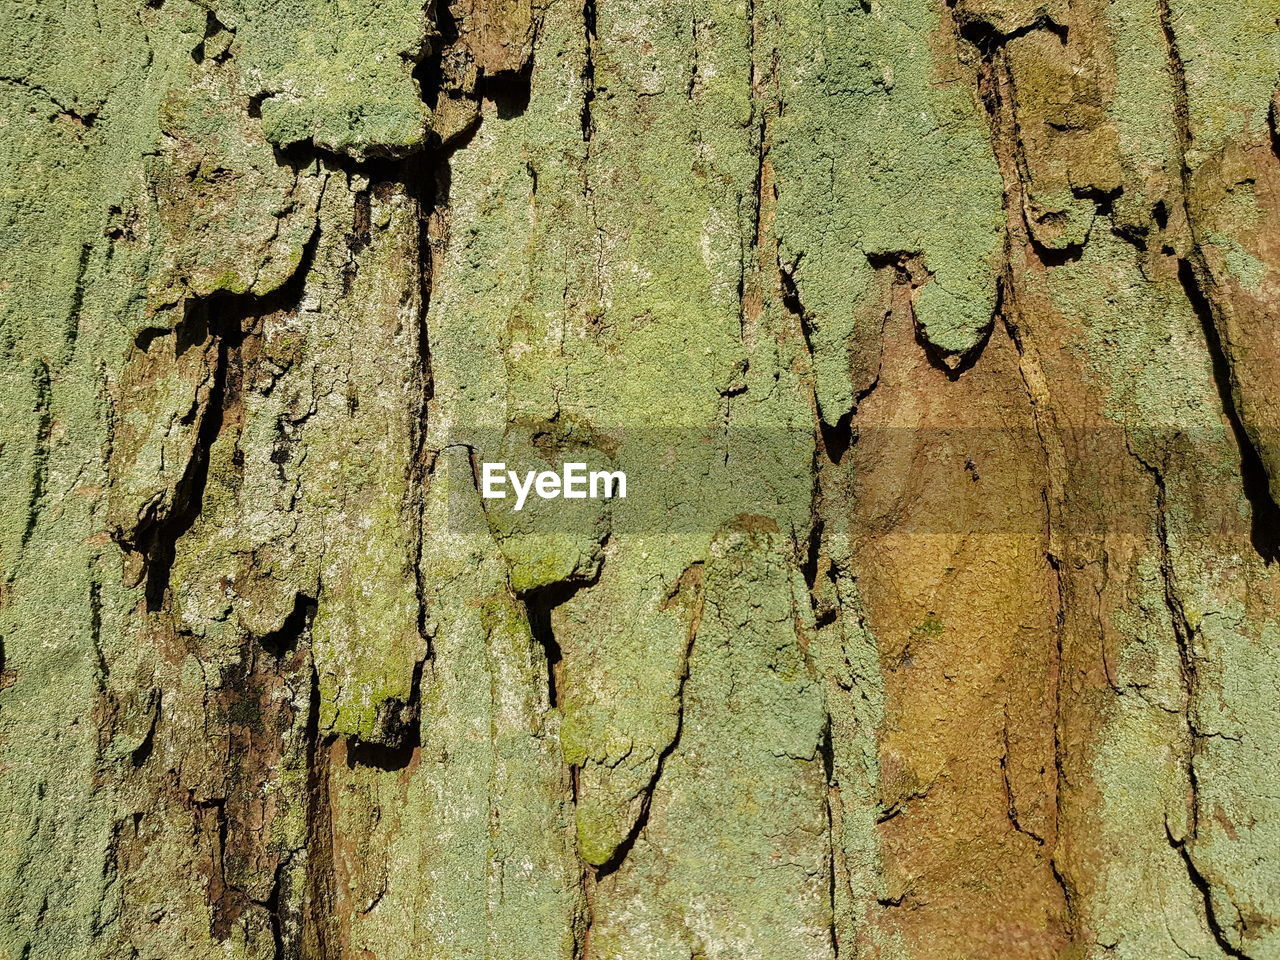 textured, backgrounds, tree trunk, full frame, trunk, tree, no people, close-up, rough, day, pattern, plant bark, plant, wood - material, weathered, bark, nature, cracked, outdoors, old, lichen